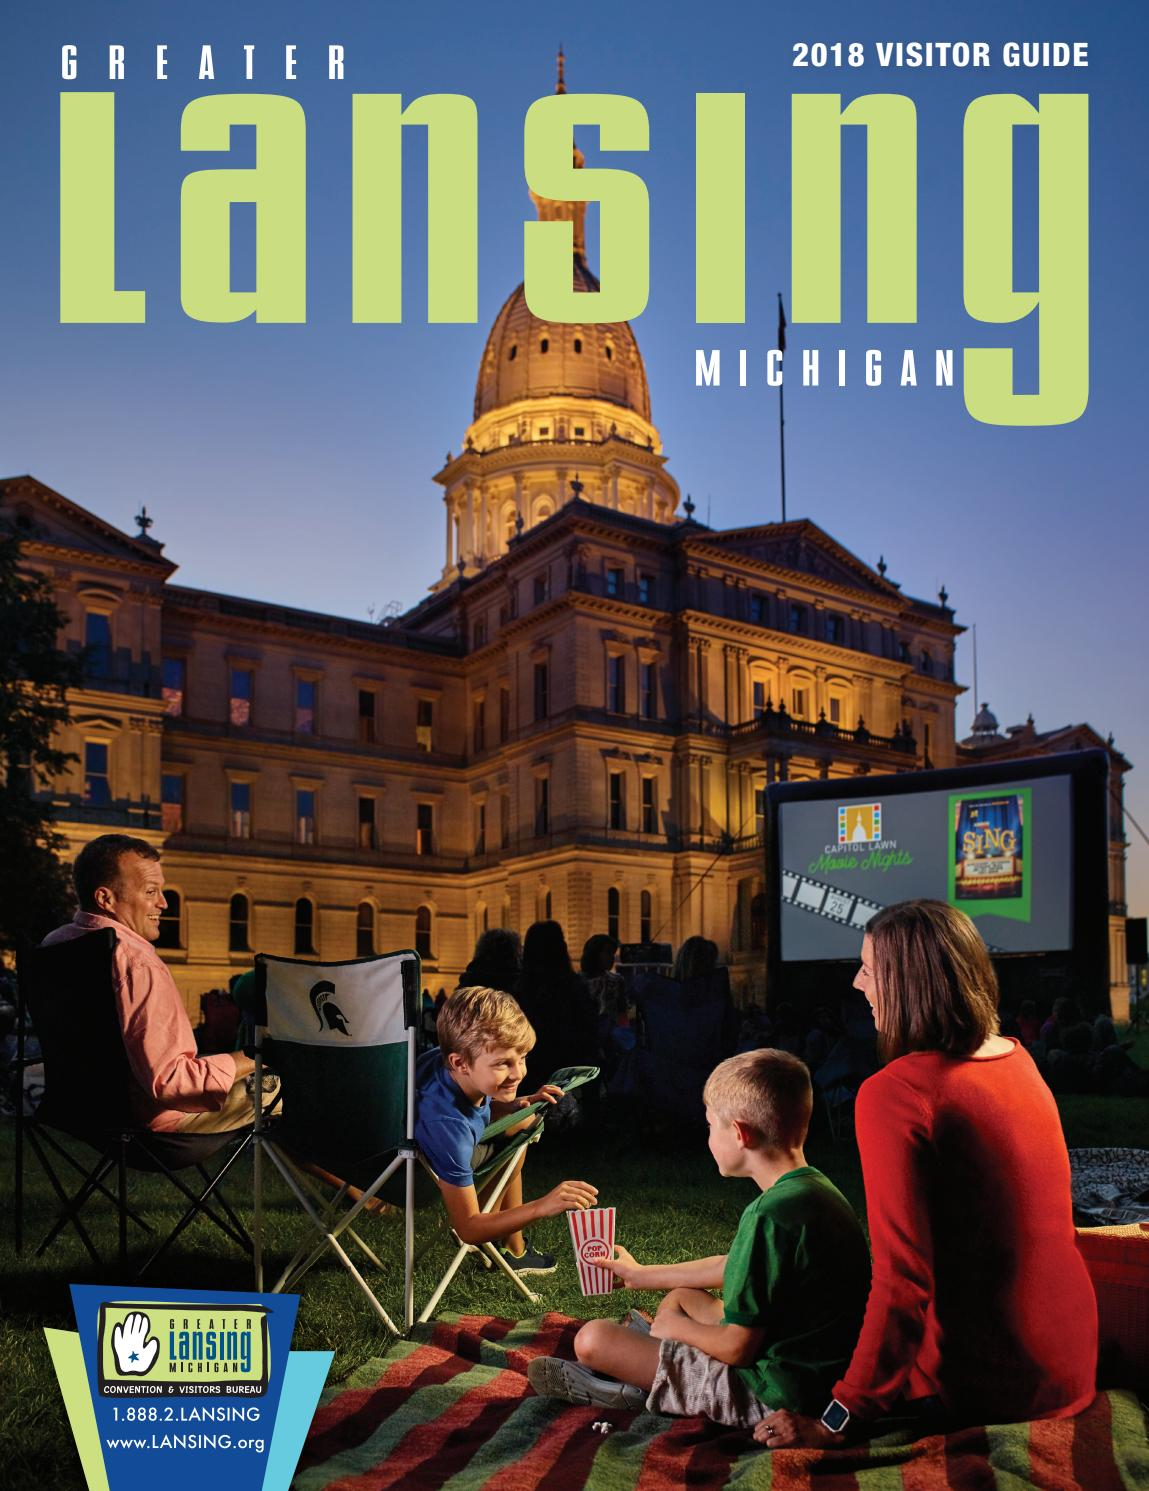 2018 Greater Lansing Visitor Guide by Greater Lansing Convention ...